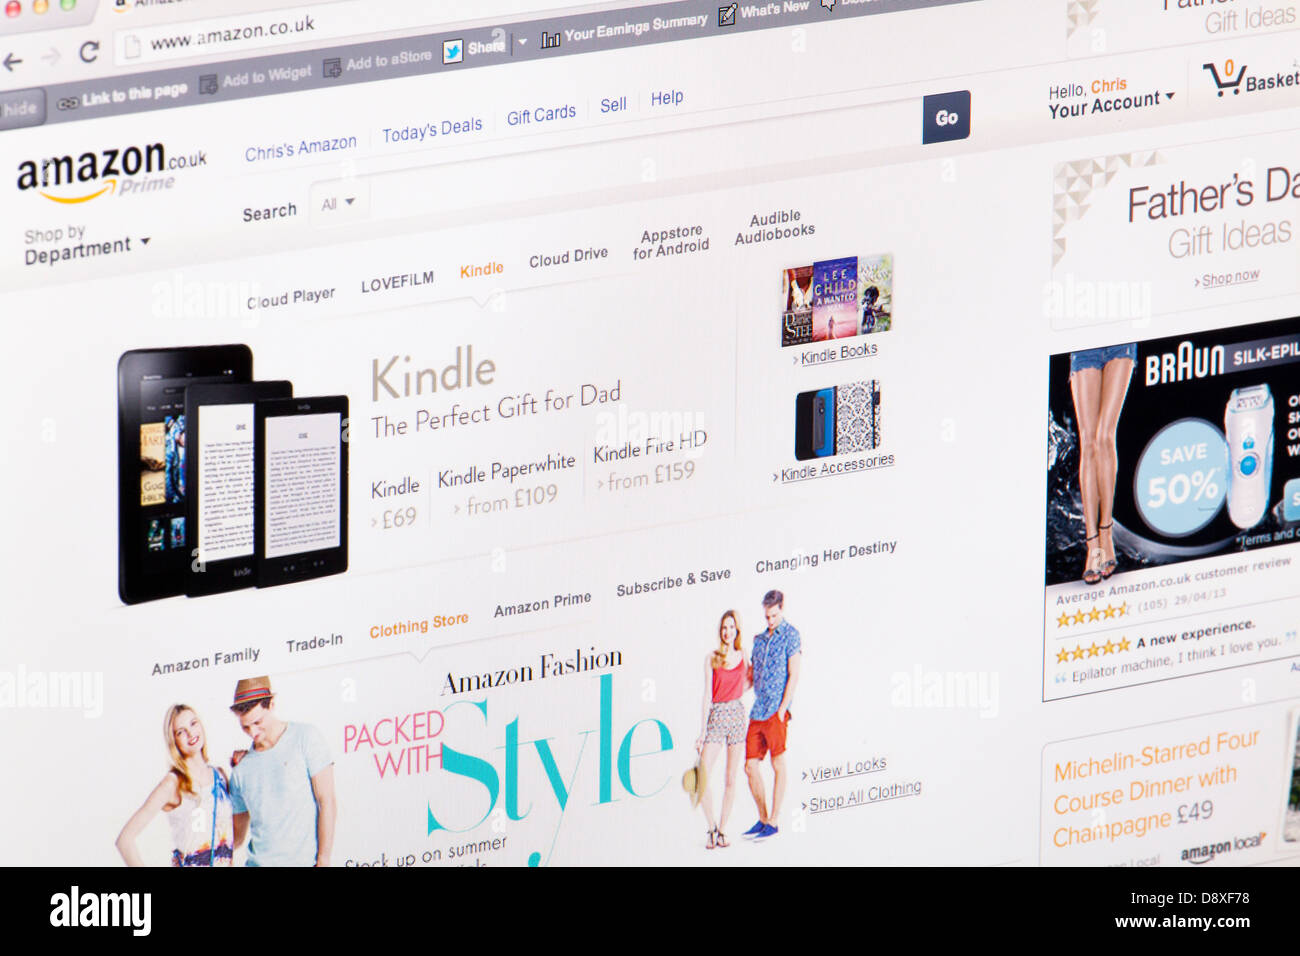 Amazon Shop Online Homepage Website or web page on a laptop screen or computer monitor - Stock Image